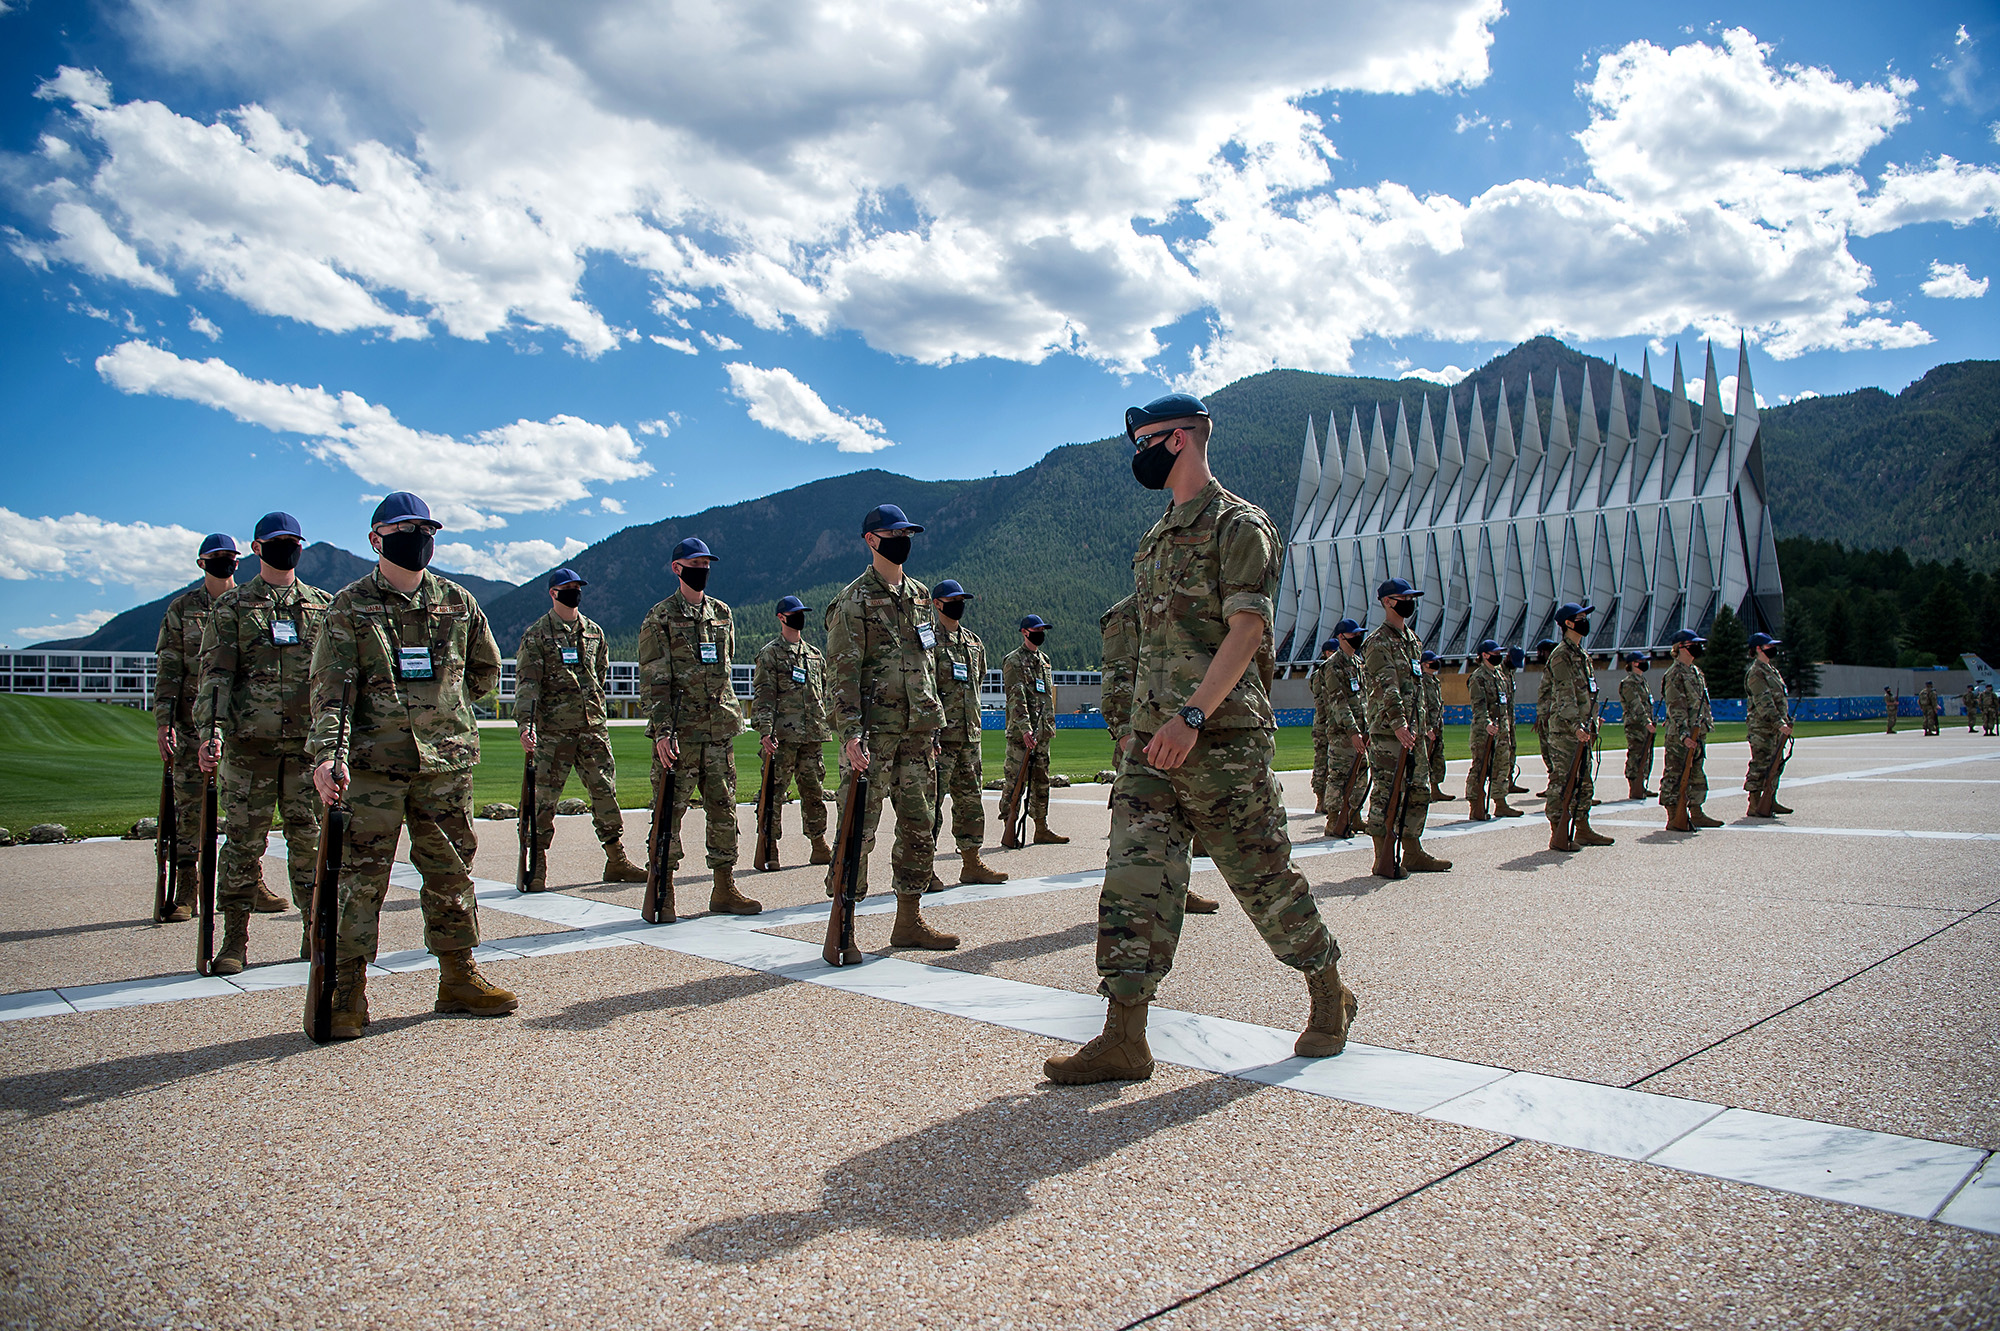 Academy basic cadets participate in the first phase of basic cadet training with marching drills on July 8, 2020, on the Terrazzo at the U.S. Air Force Academy in Colorado. (Trevor Cokley/Air Force)